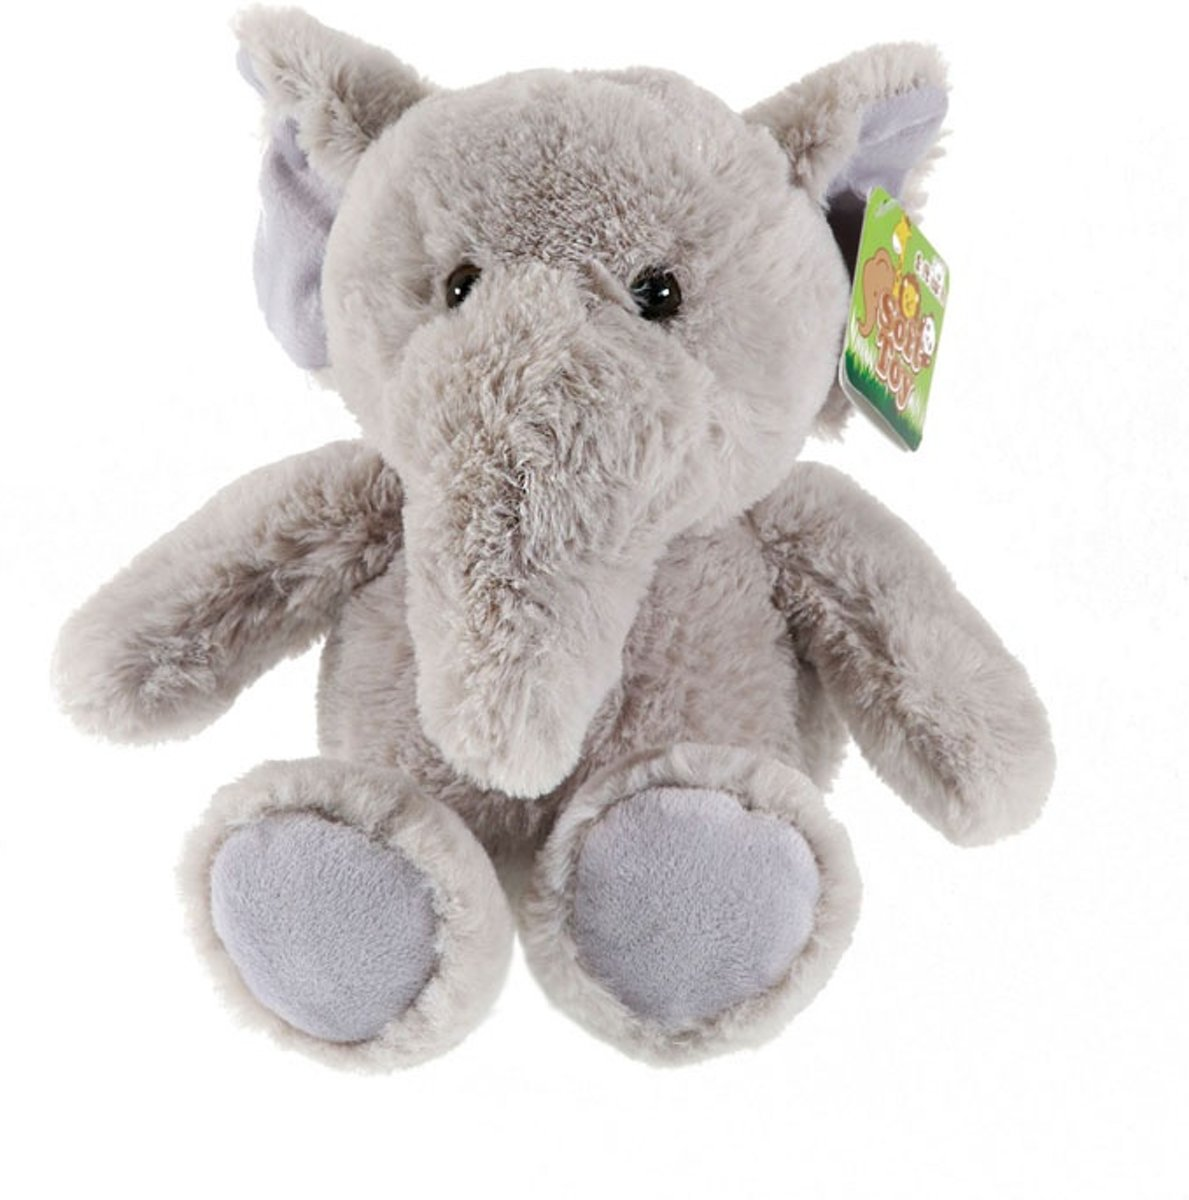 Soft Touch Knuffelolifant Zittend Grijs 21 Cm